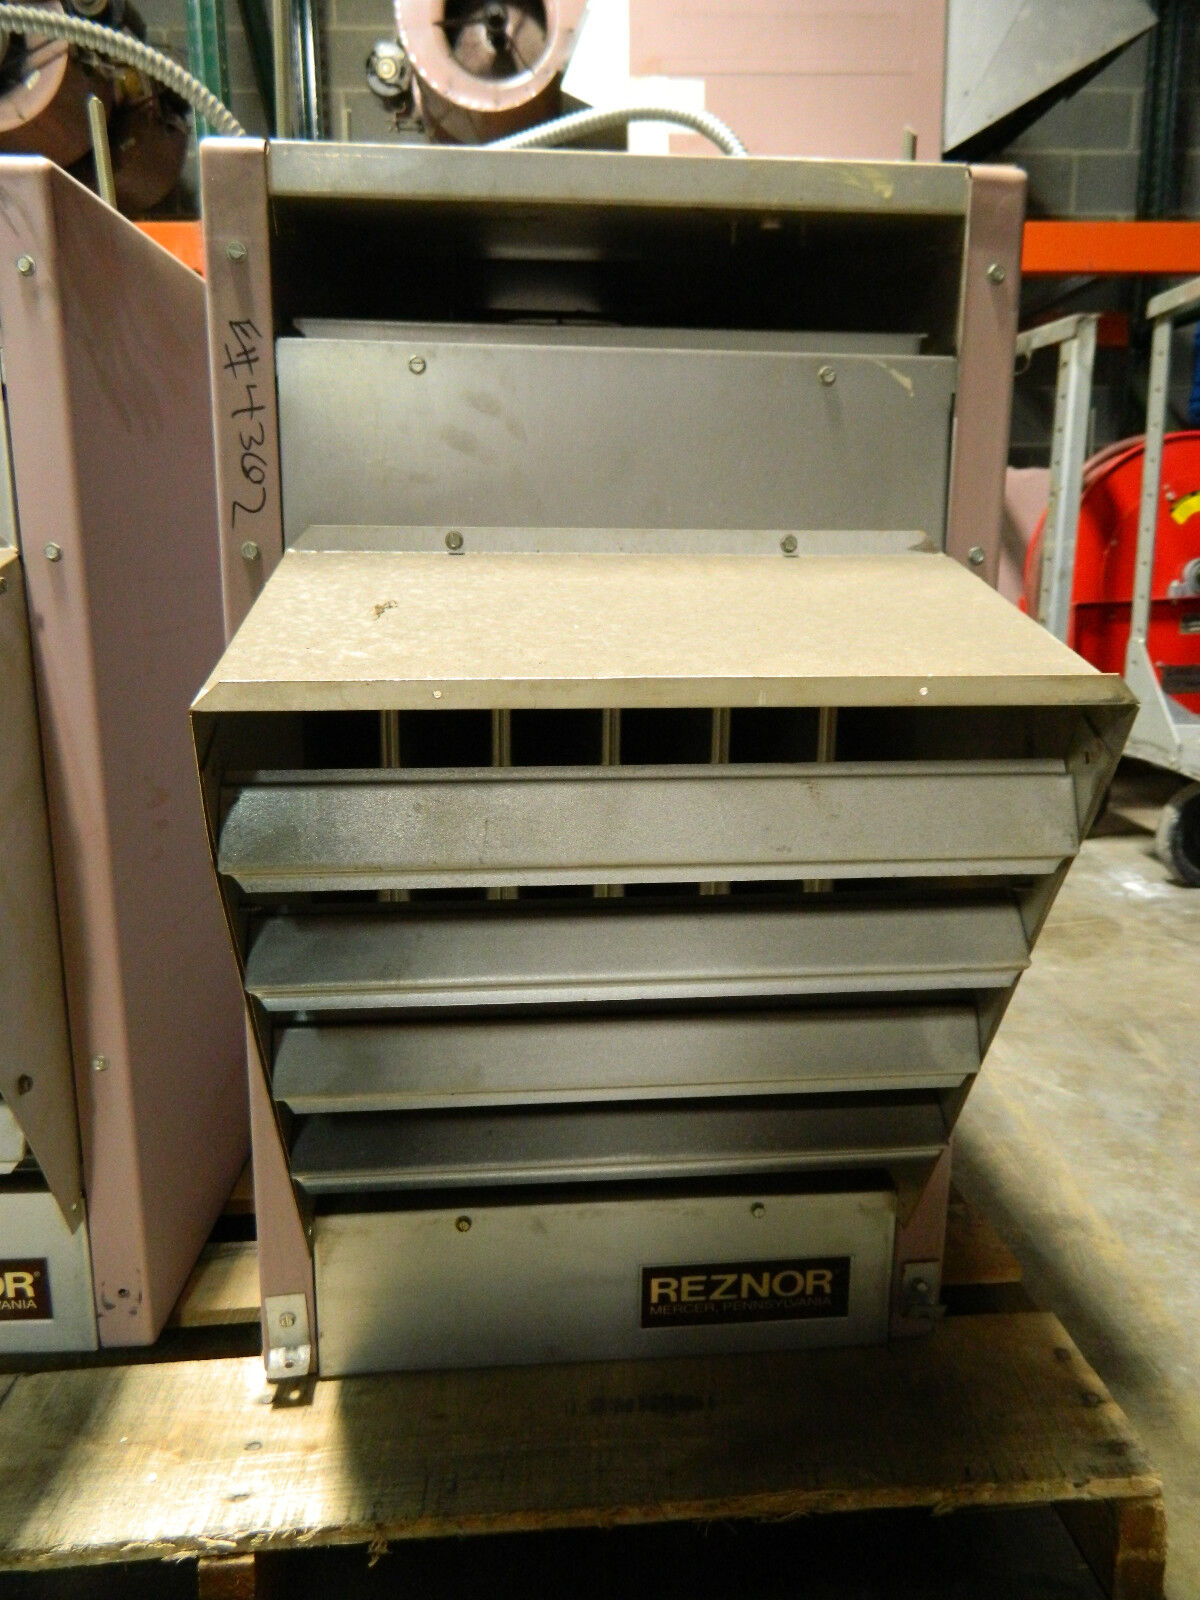 Reznor Natural Gas Electronic Ignition Unit Heater B100 E _57?strip=all reznor overhead heater with electronic ignition wiring diagram  at n-0.co